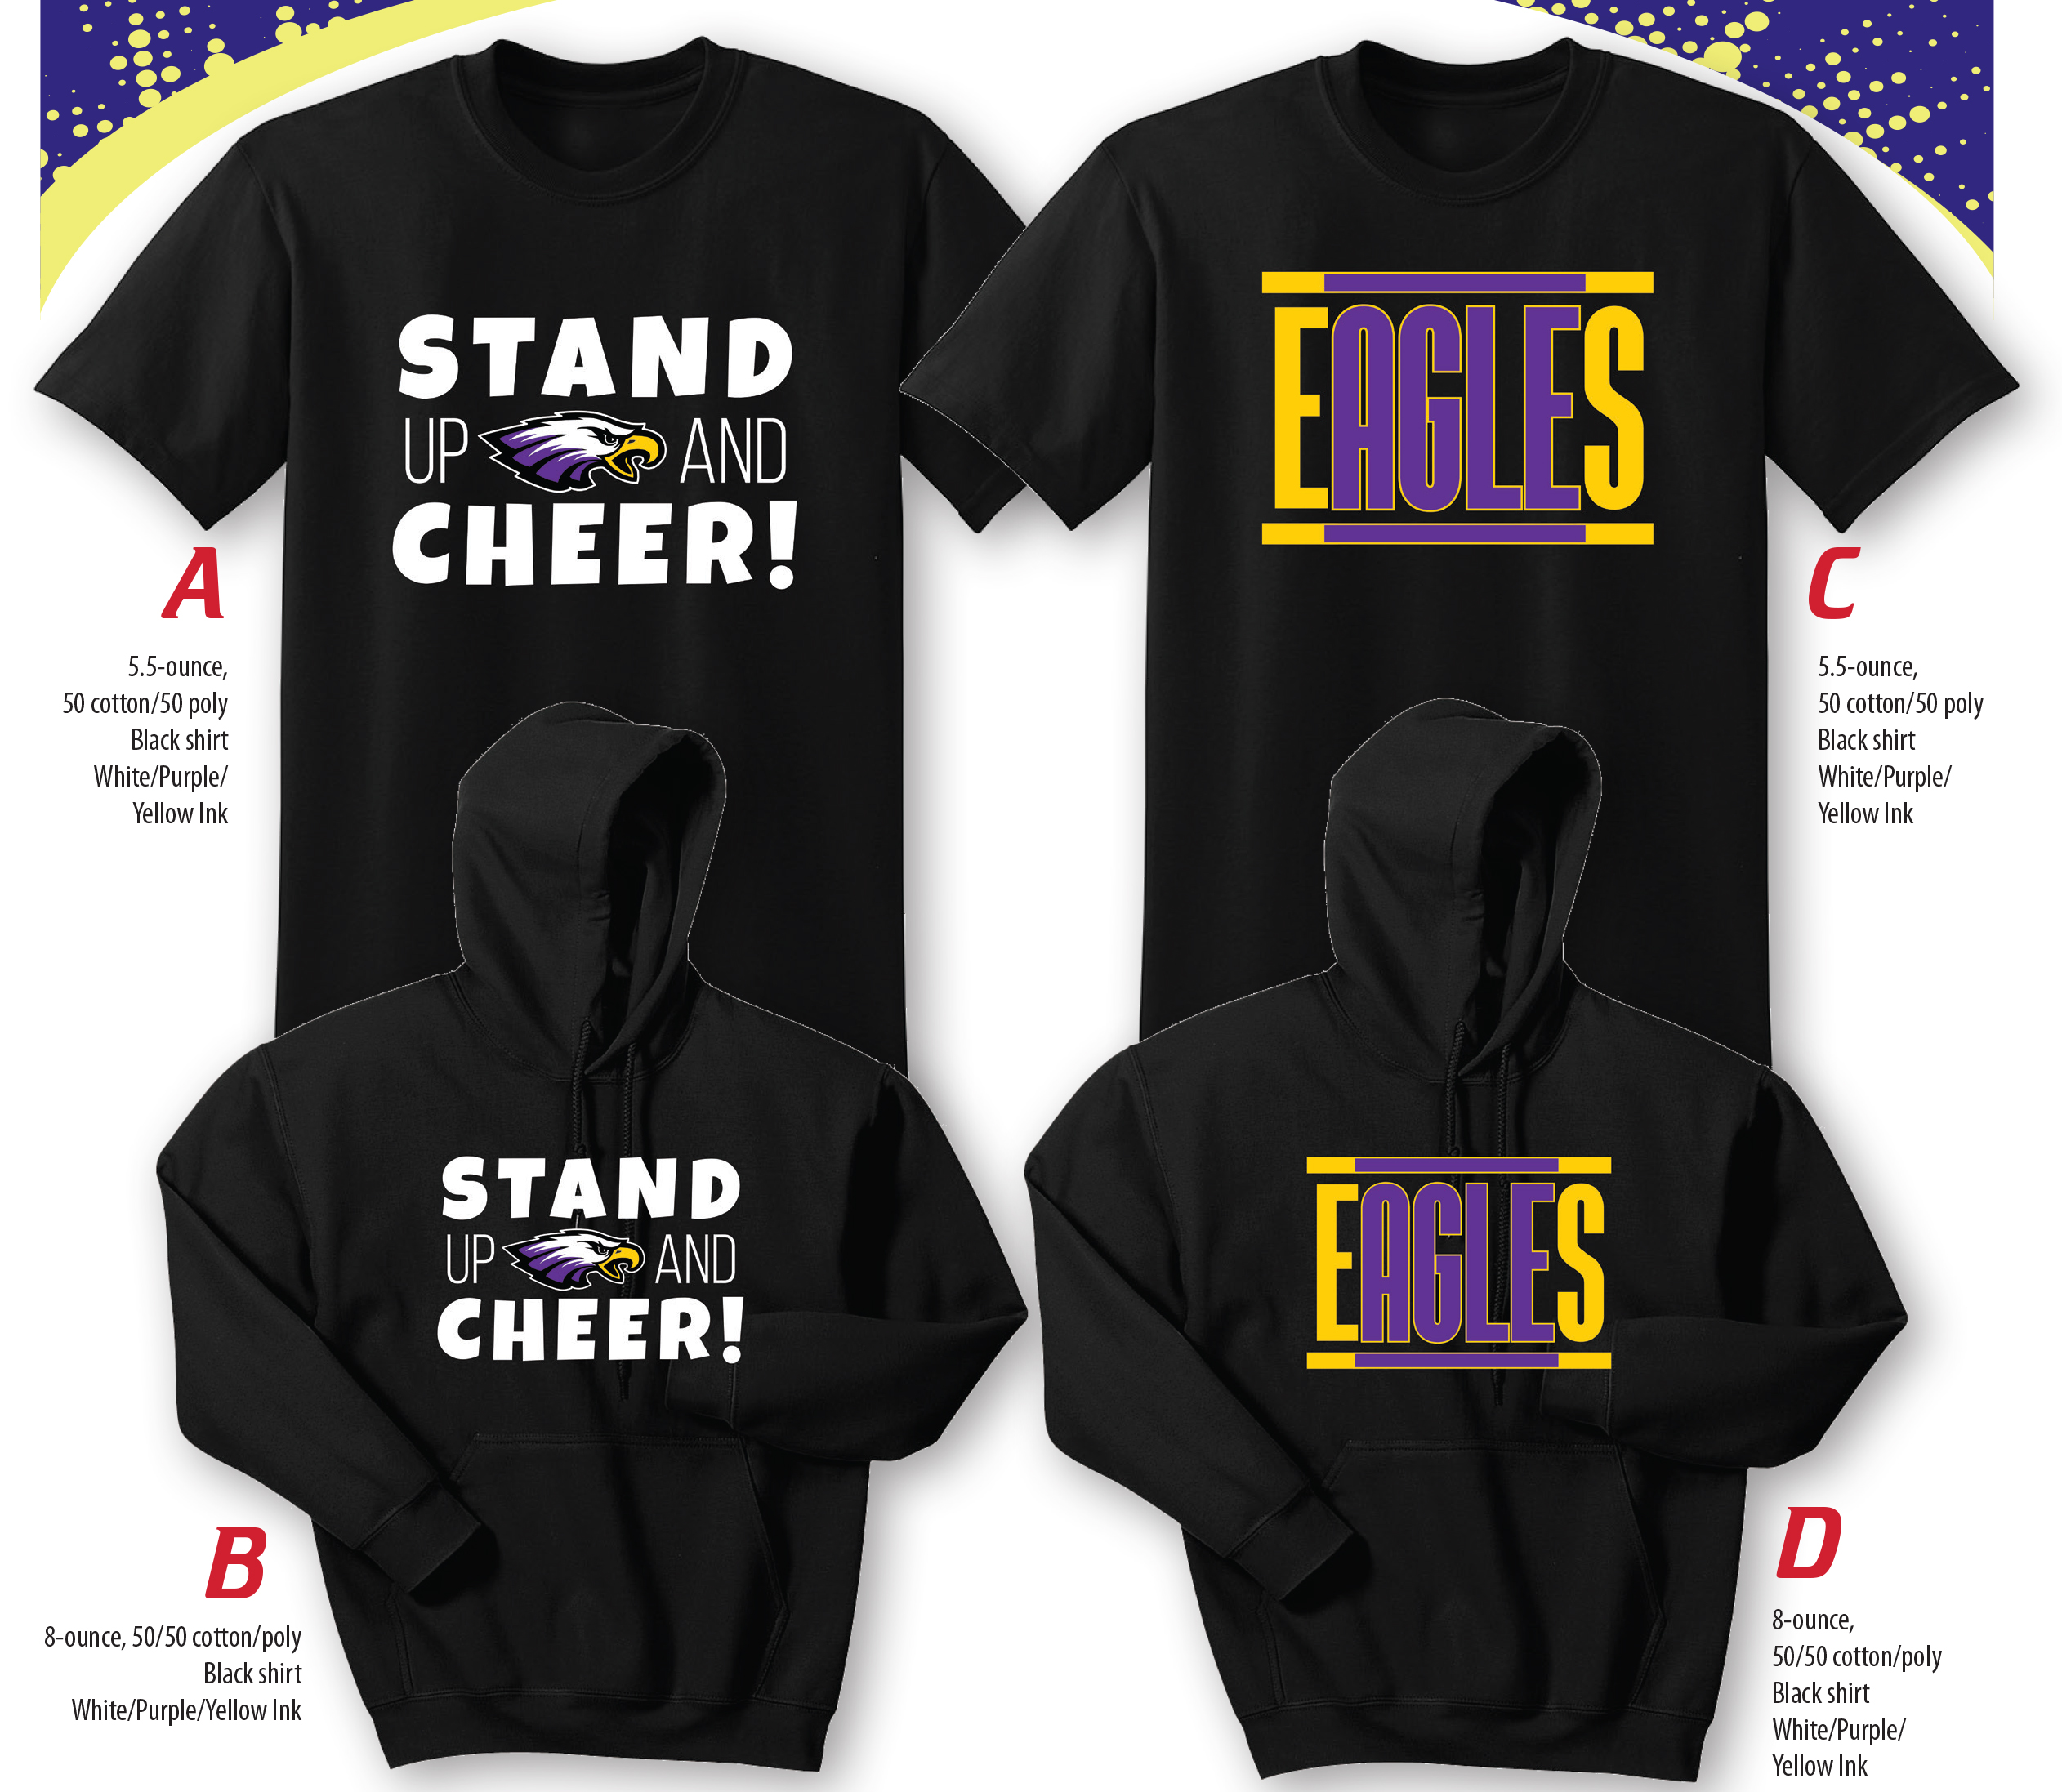 "Campbellsville Independent Schools Relay for Life team is selling t-shirts and hoodies to raise money for the American Cancer Society.    This year's shirts feature two designs.    The first includes the words ""Stand Up and Cheer!"" and the Eagle logo.    The other includes the word Eagles in purple and gold lettering."